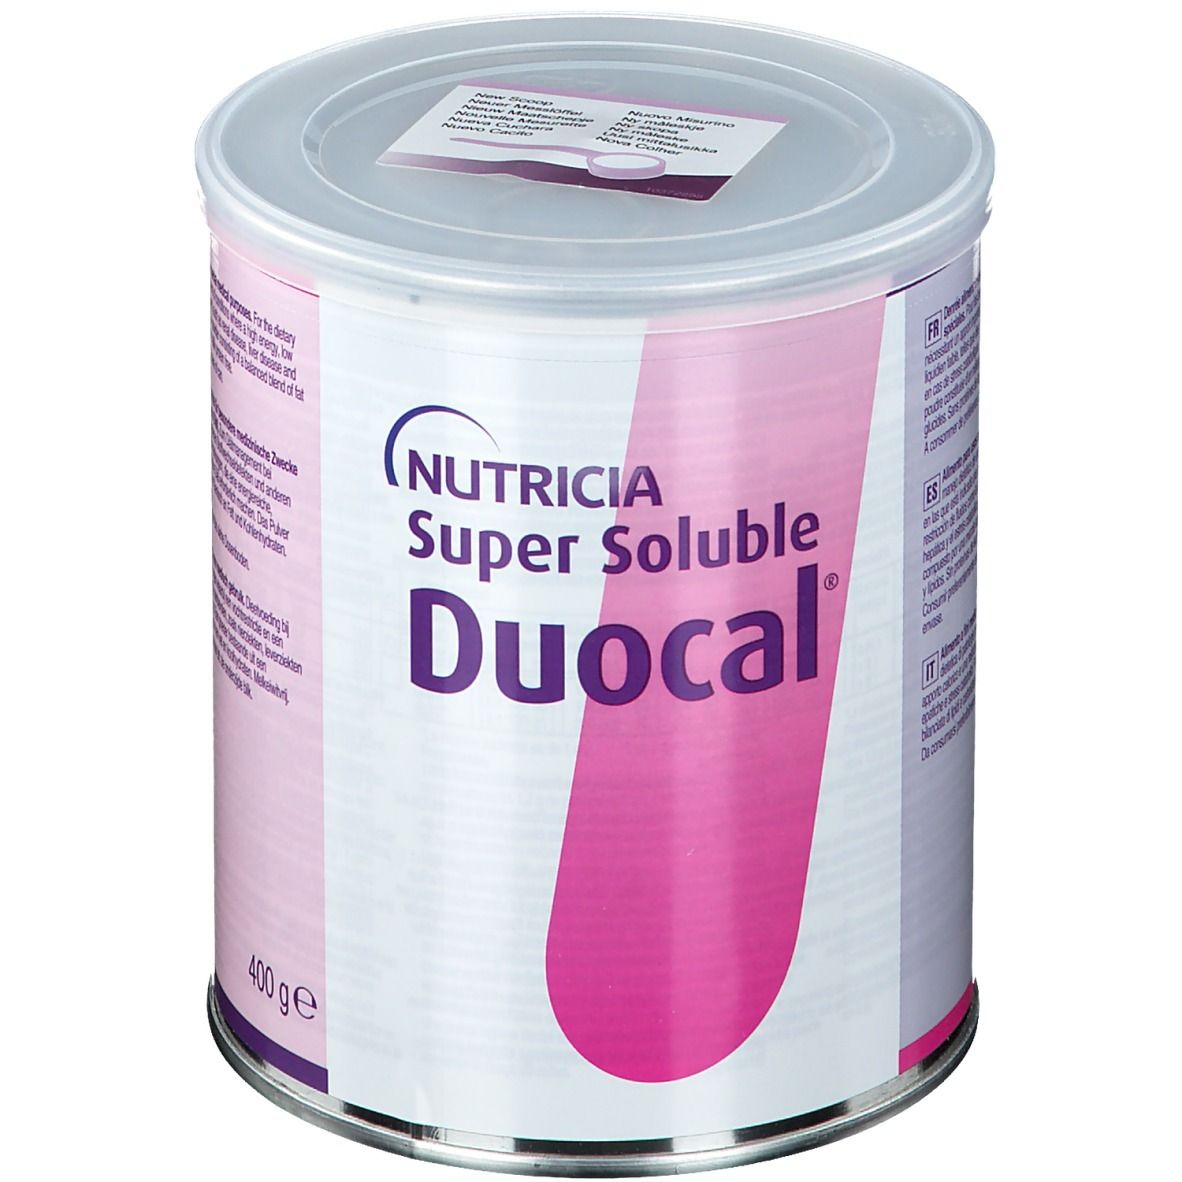 Nutricia Duocal